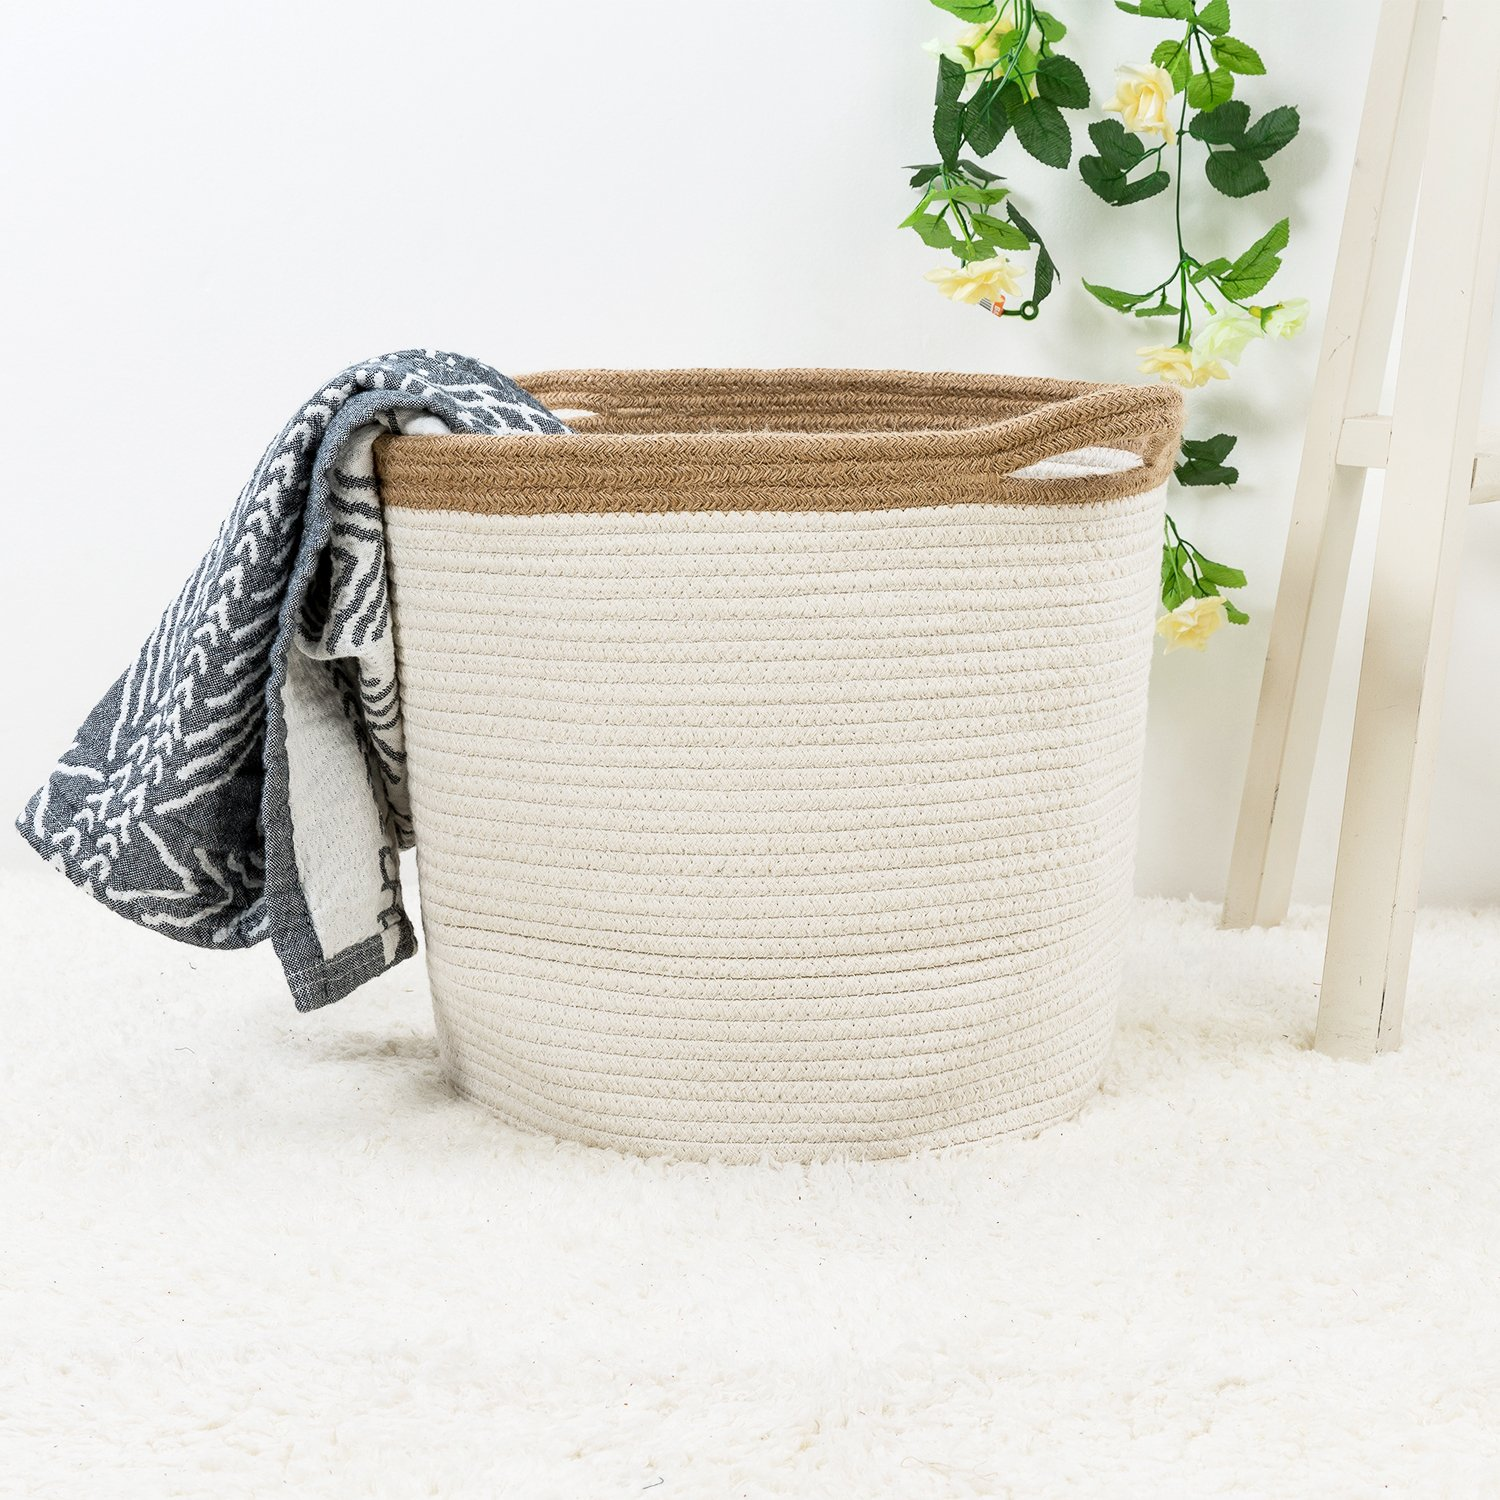 Goodpick 15'' x 12.6'' x 11.8'' Large Cotton Rope Basket - Woven Storage Basket - Baby Bins for Diapers, Laundry Organization, Toys, Towels, Blankets, Nursery - Decor Cotton Storage Container